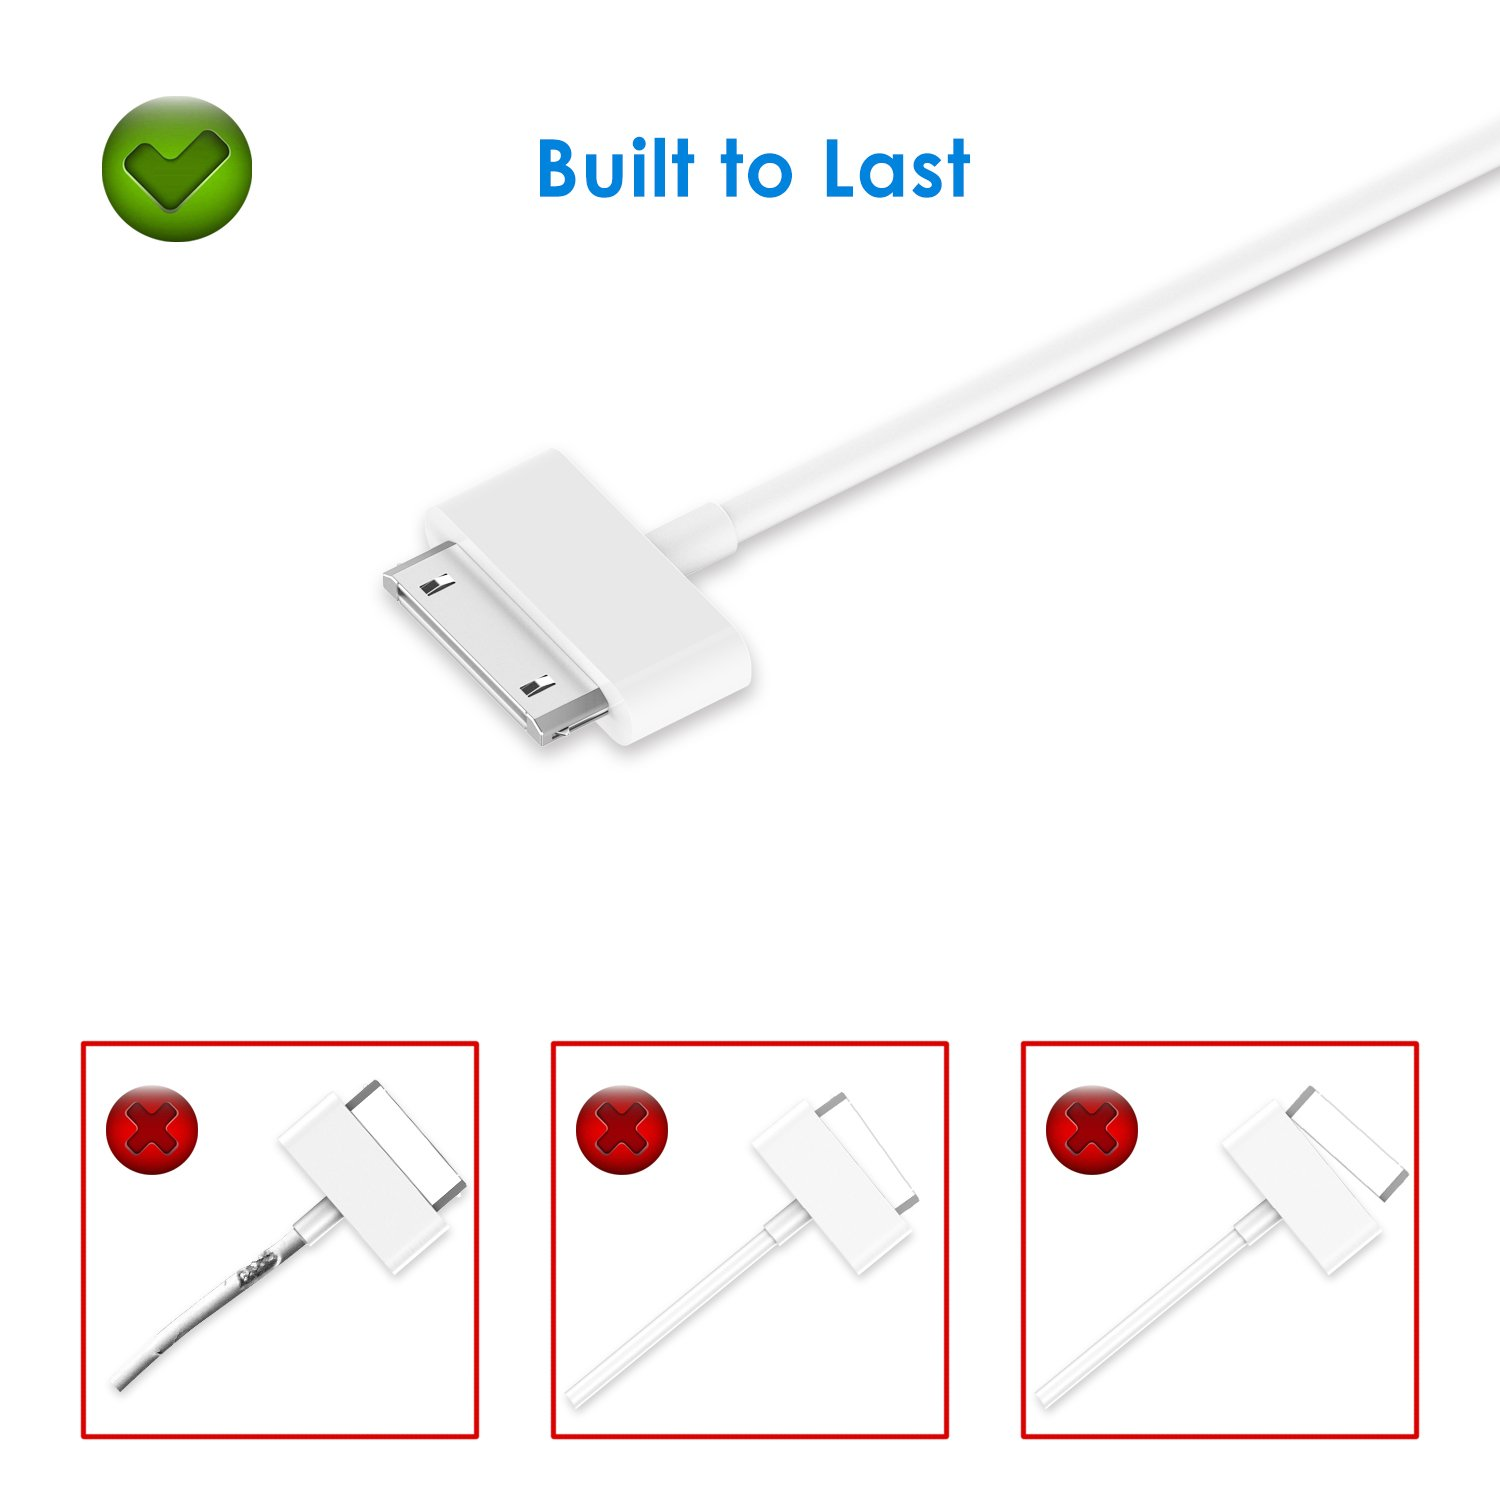 Jetech Usb Sync And Charging Cable For Apple Iphone 4 4s 30 Pin Ipod To Wire Schematic 3g 3gs Ipad 1 2 3 32 Feet White Cell Phones Accessories